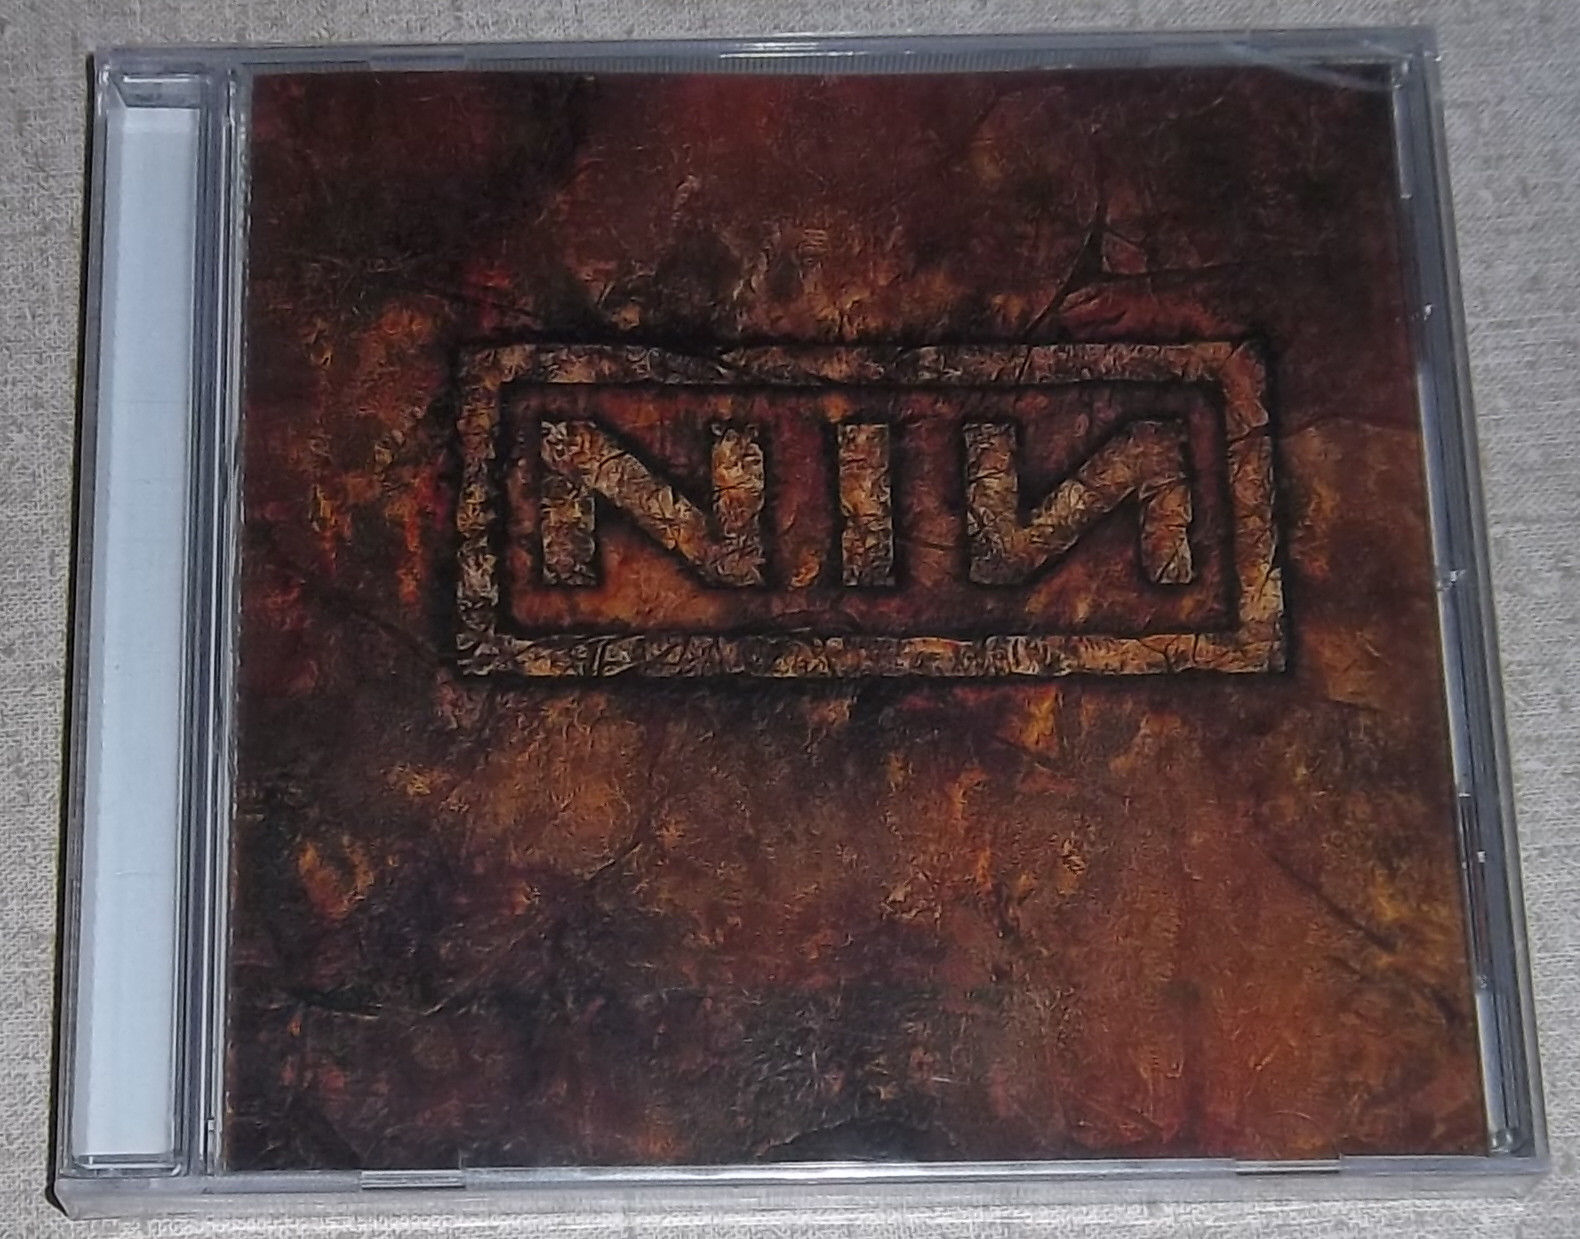 NINE INCH NAILS The Downward Spiral SOUTH AFRICA Cat# STARCD6498 ...